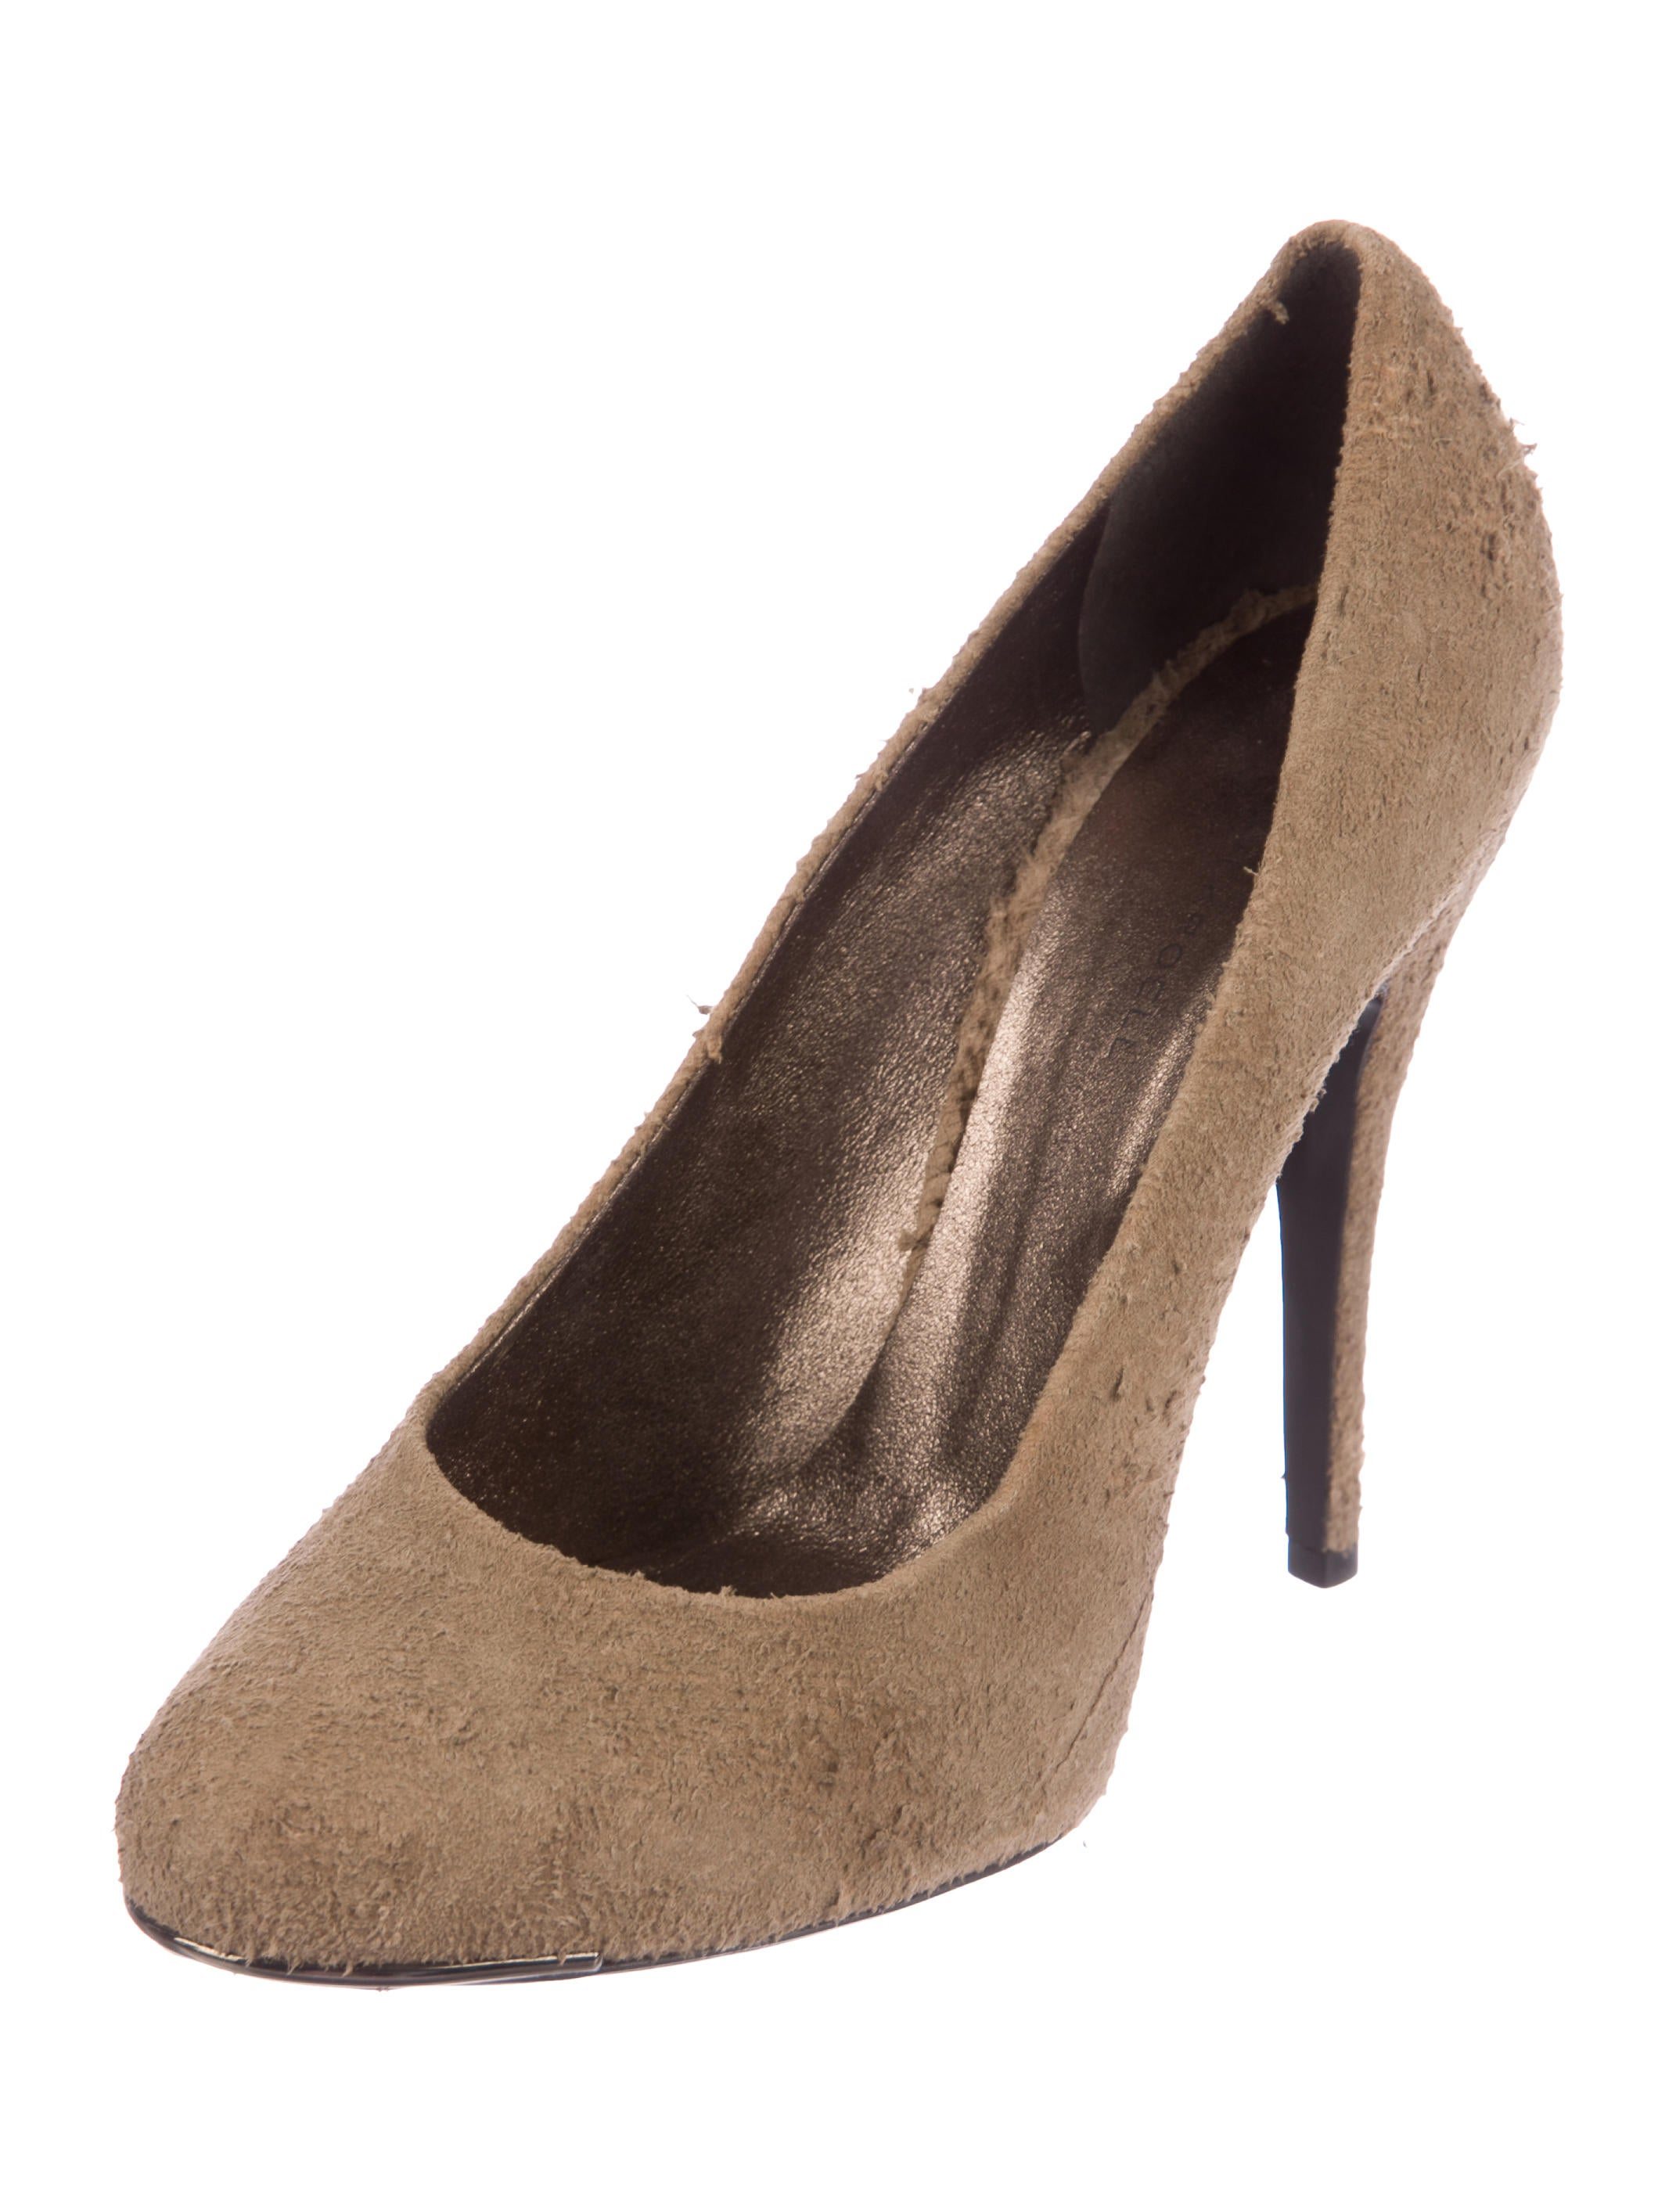 outlet store Locations Devi Kroell Distressed Suede Pumps outlet amazon comfortable cheap price pick a best cheap price manchester great sale cheap price XfnsZ1w